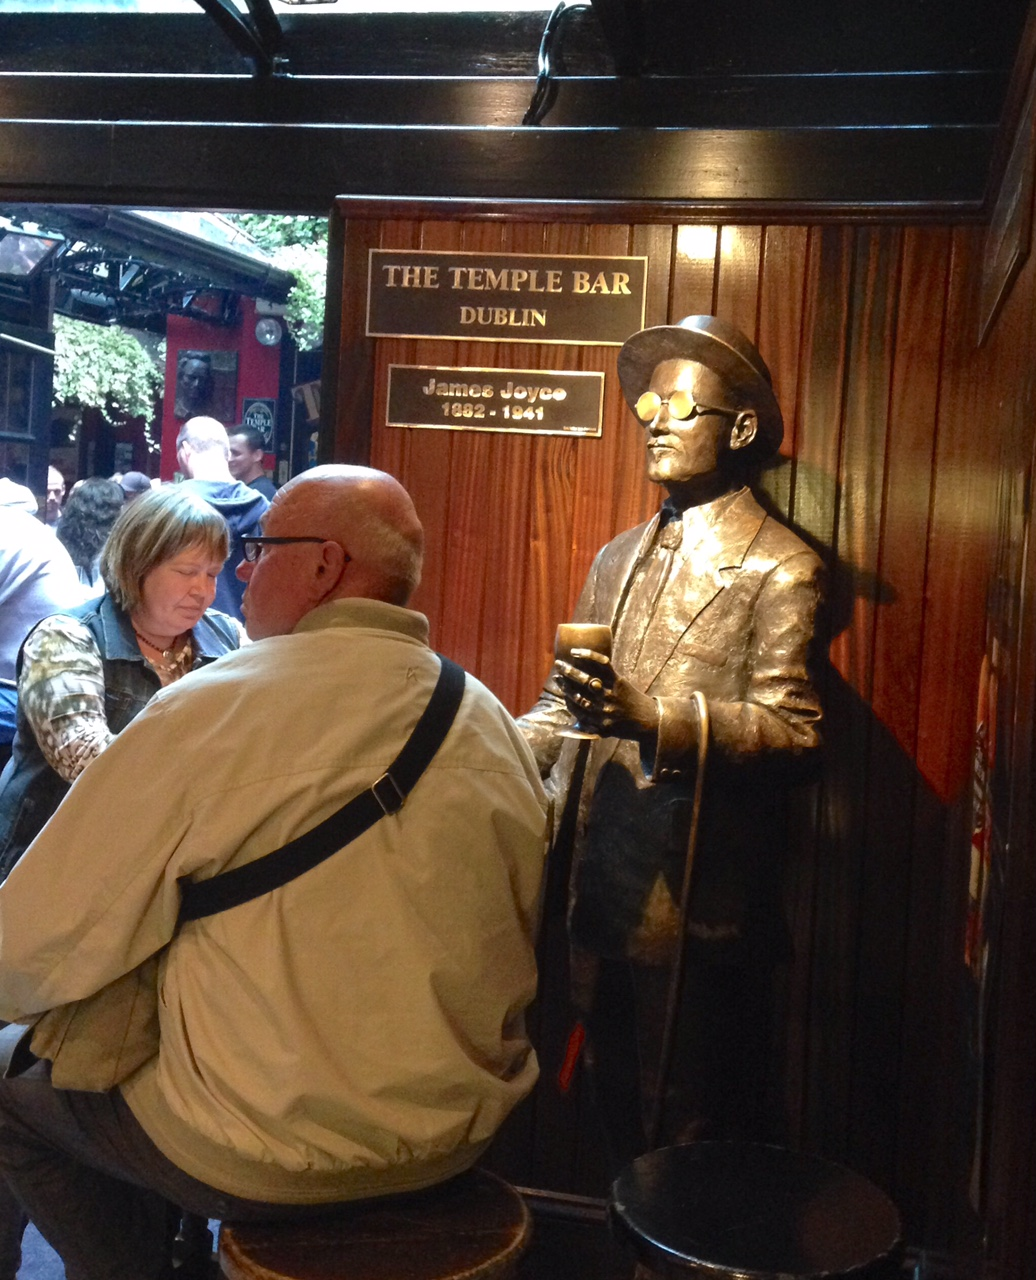 ireland-dublin-temple-bar-james-joyce